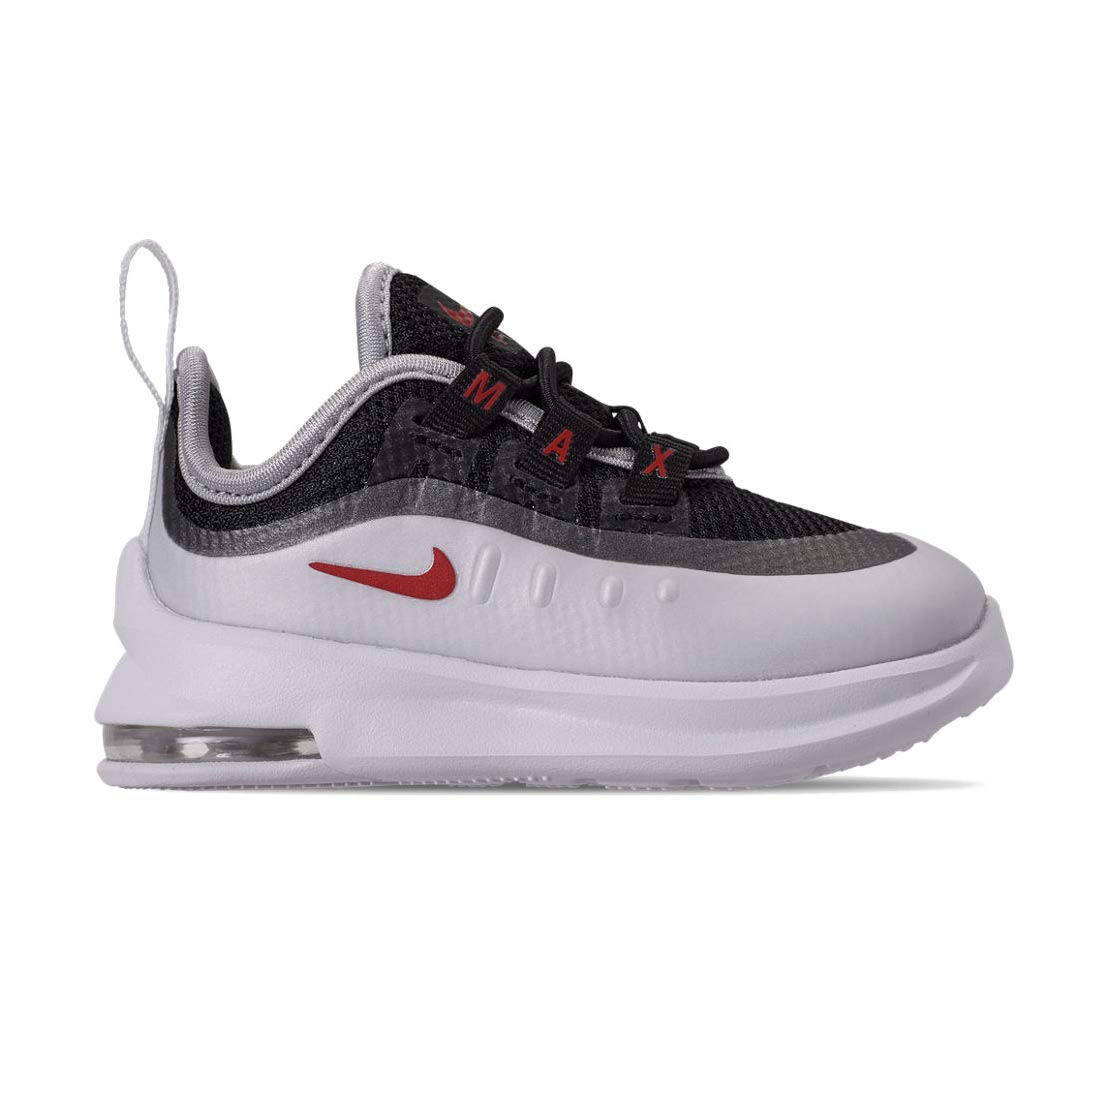 Nike Air Max Axis Womens Shoes, Size 8 | Property Room